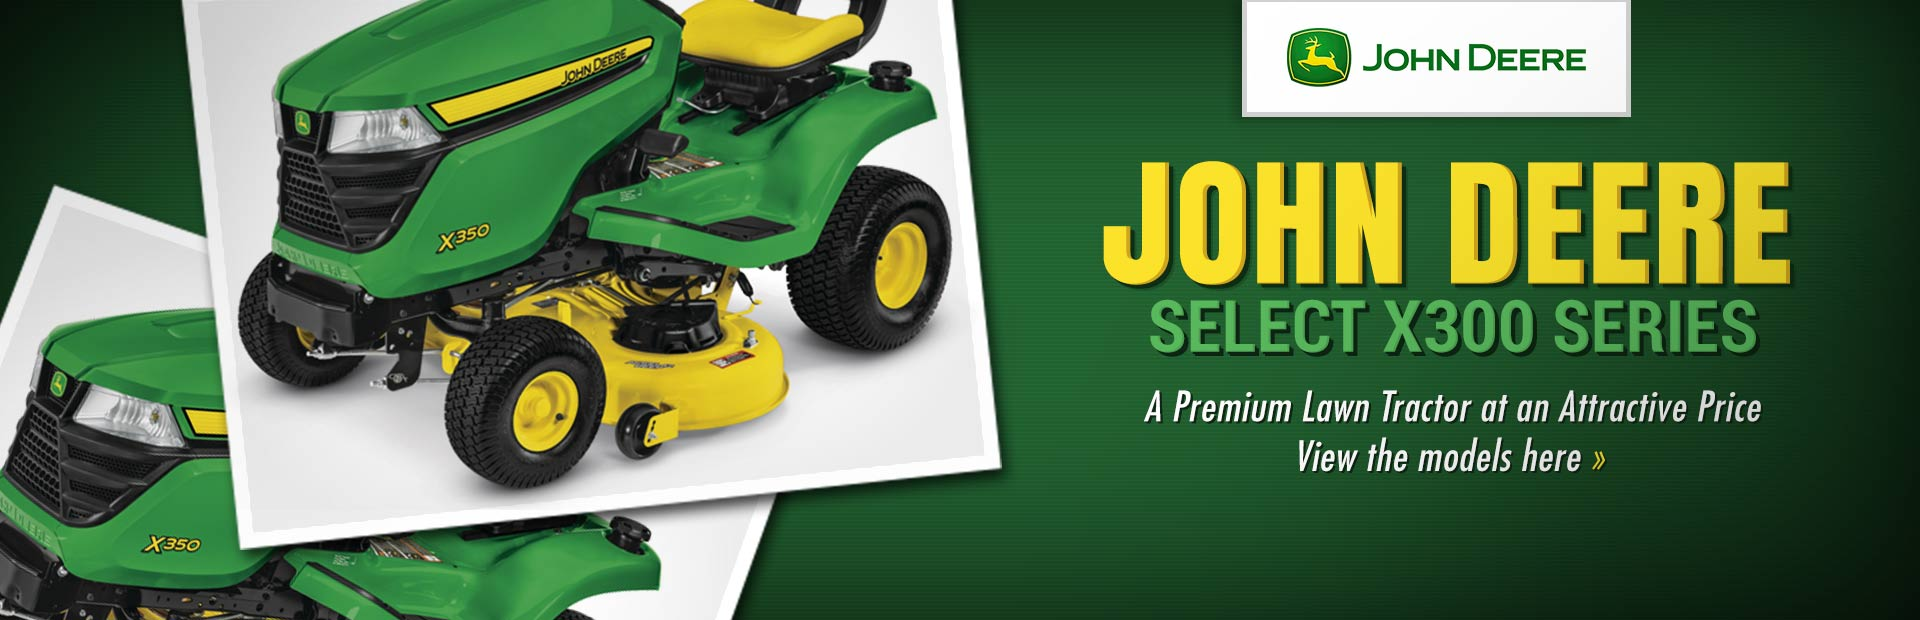 john deere select series-#29